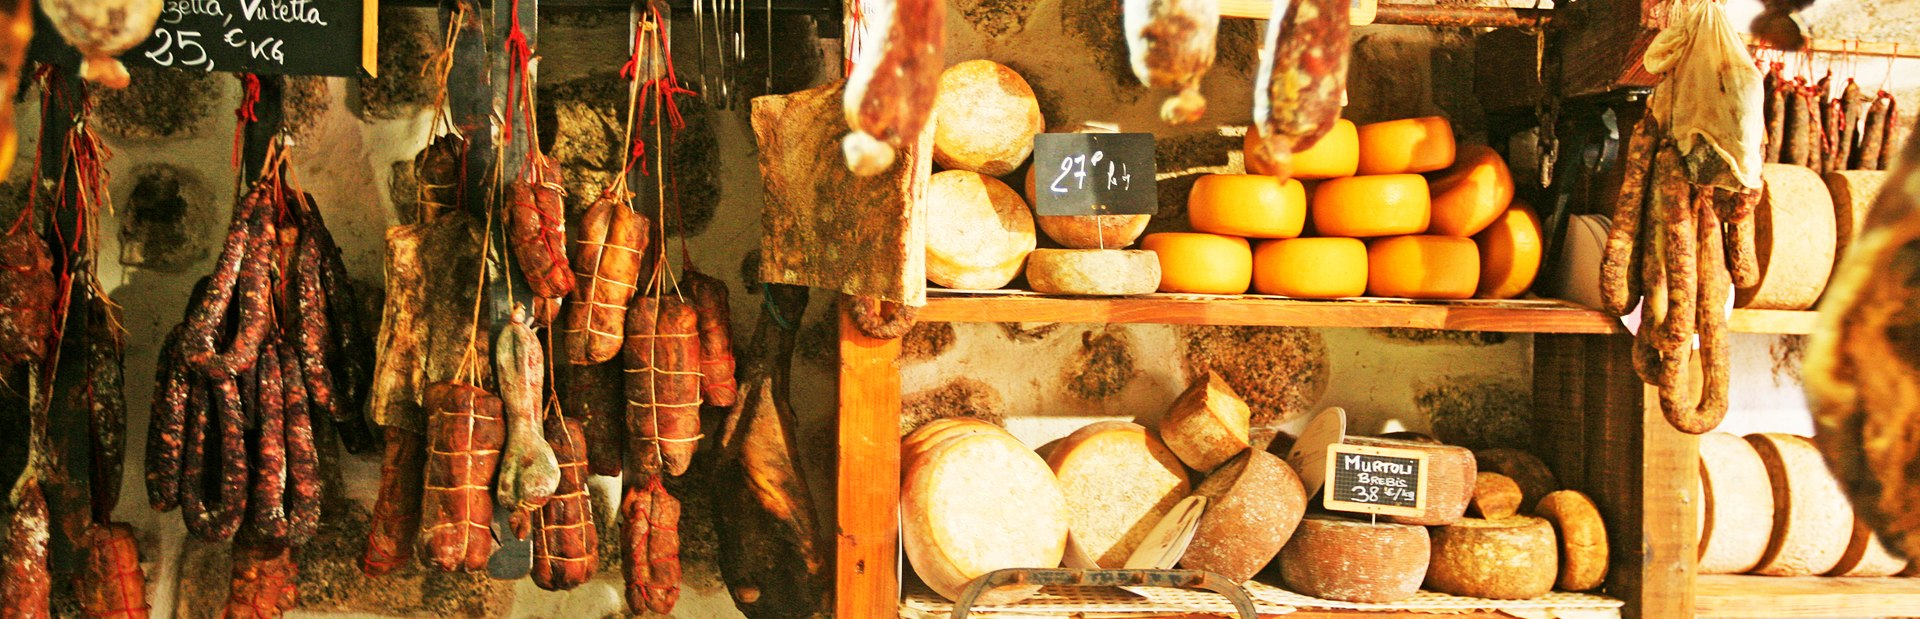 9 local delicacies you need to try during a Corsica superyacht charter